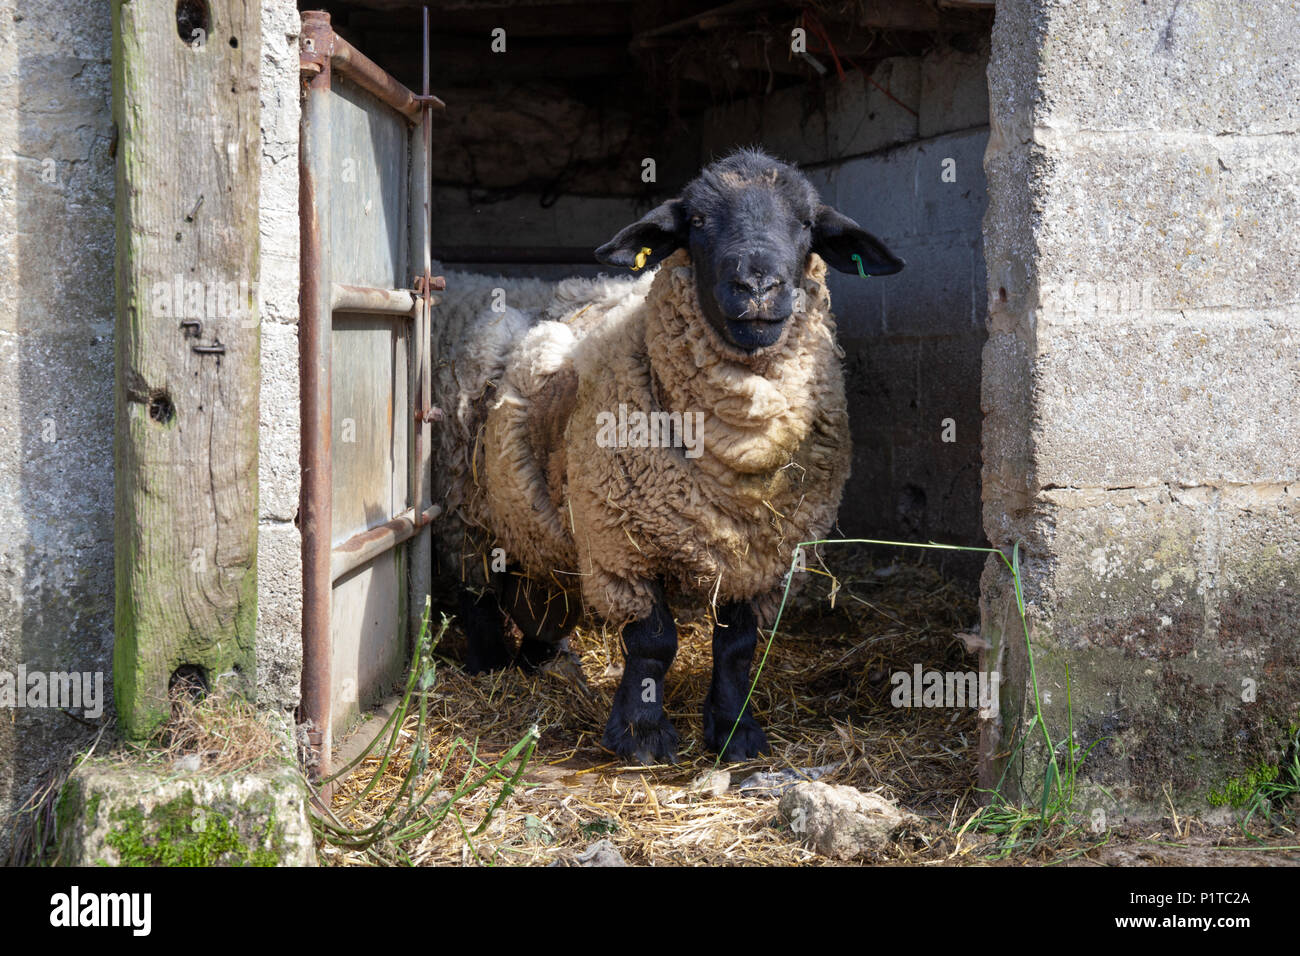 North Country Mule ram in farmyard looking at camera, Stow-on-the-Wold, Cotswolds, Gloucestershire, England, United Kingdom, Europe - Stock Image